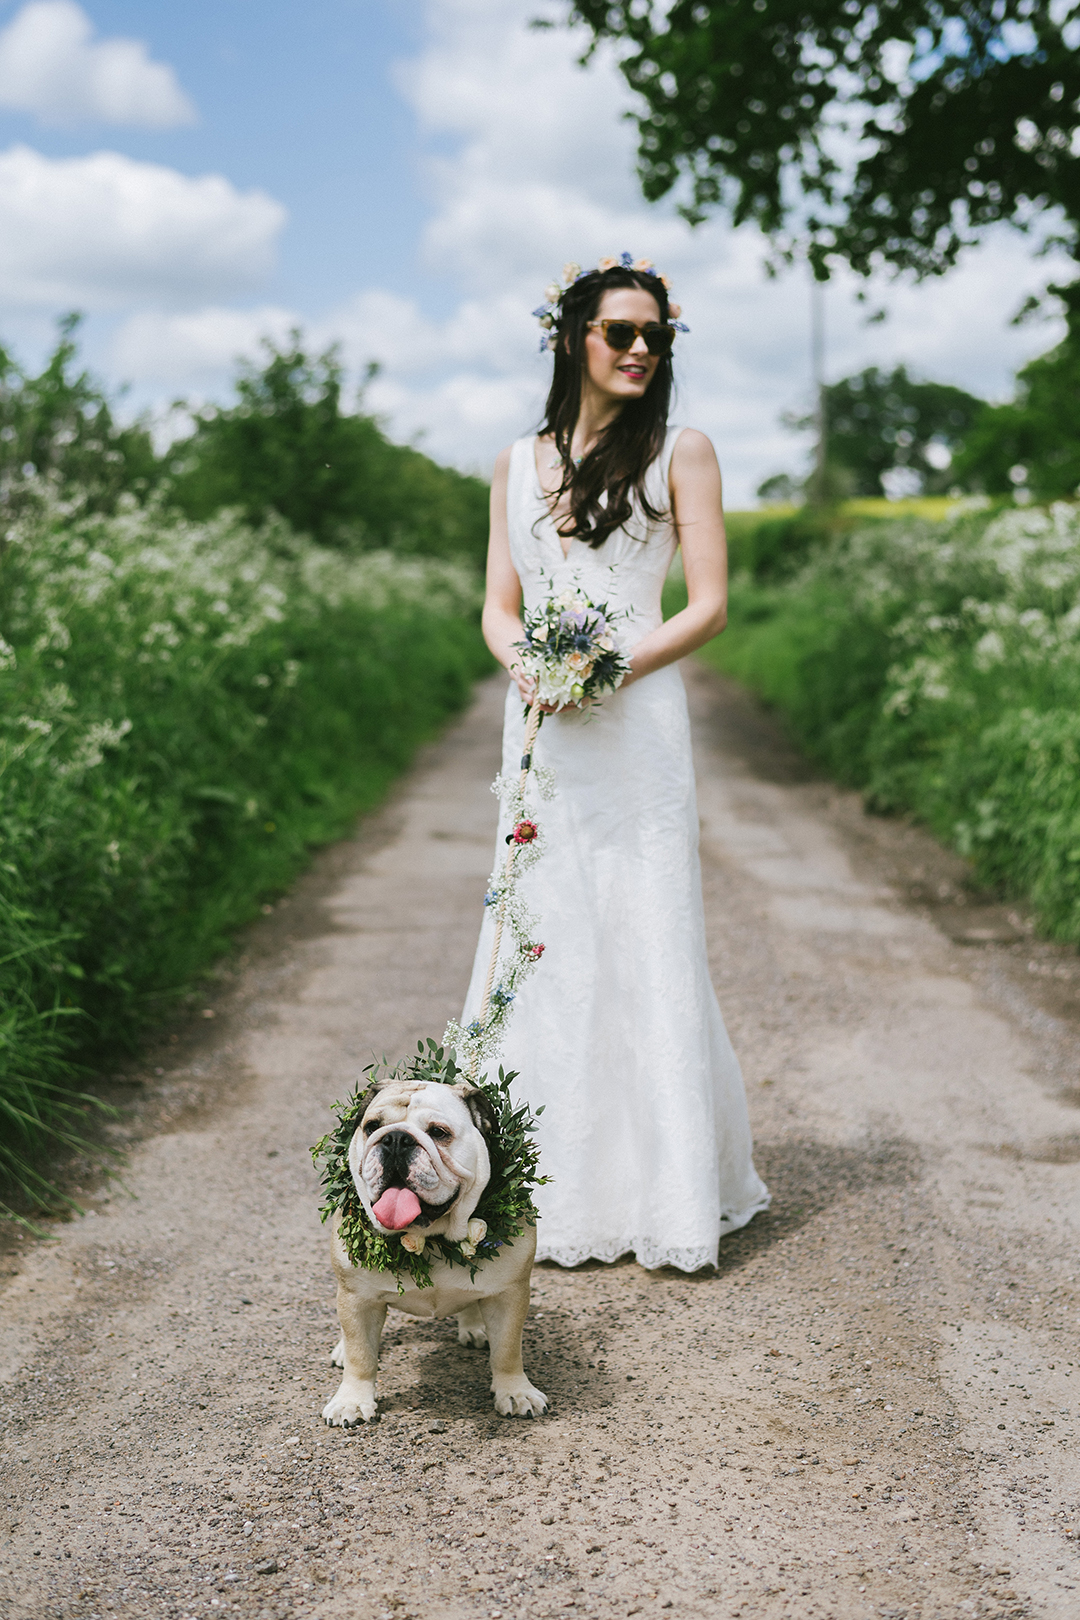 Hurleys styled shoot - Ed Godden Photography-186